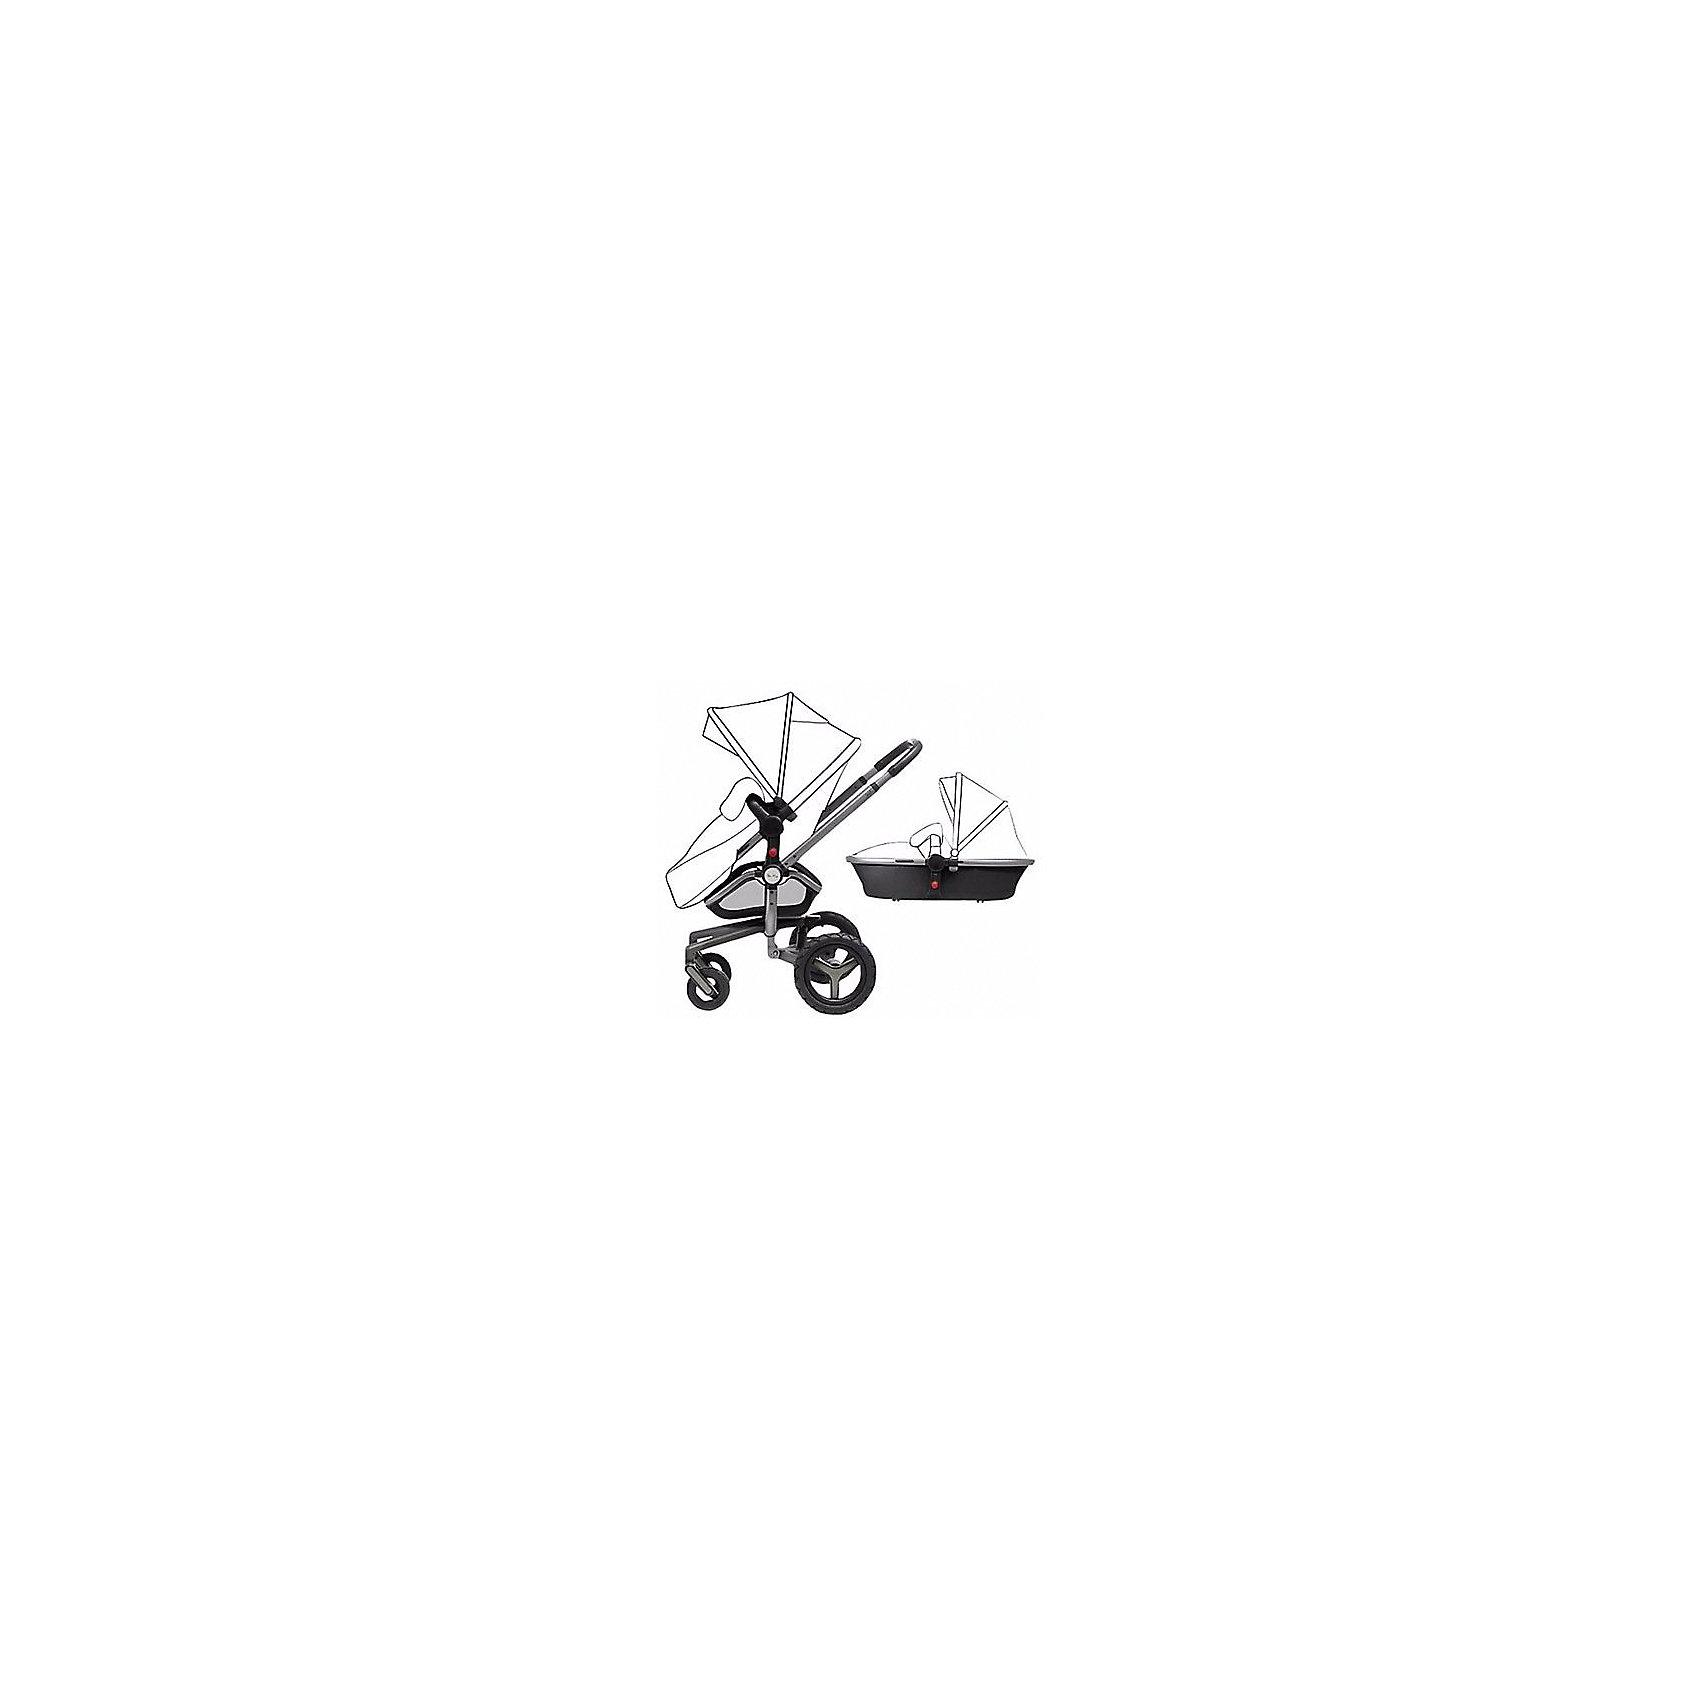 Silver Cross Коляска 2 в 1 Surf, Silver Cross, carrycot/chassis graphite